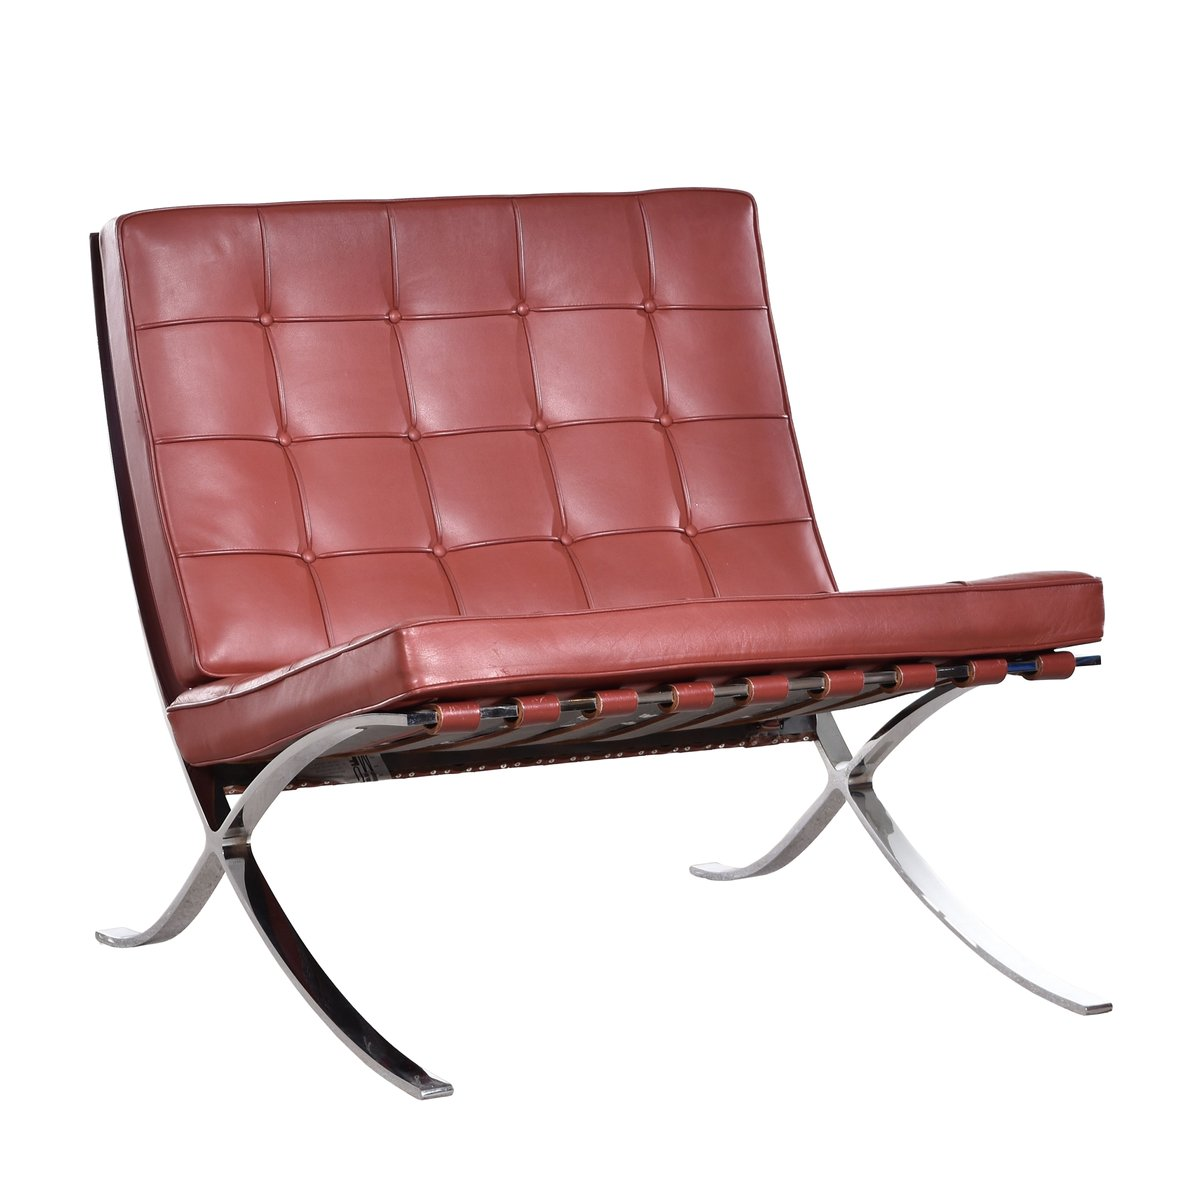 Barcelona chair by ludwig mies van der rohe for knoll for - Mies van der rohe sedia ...